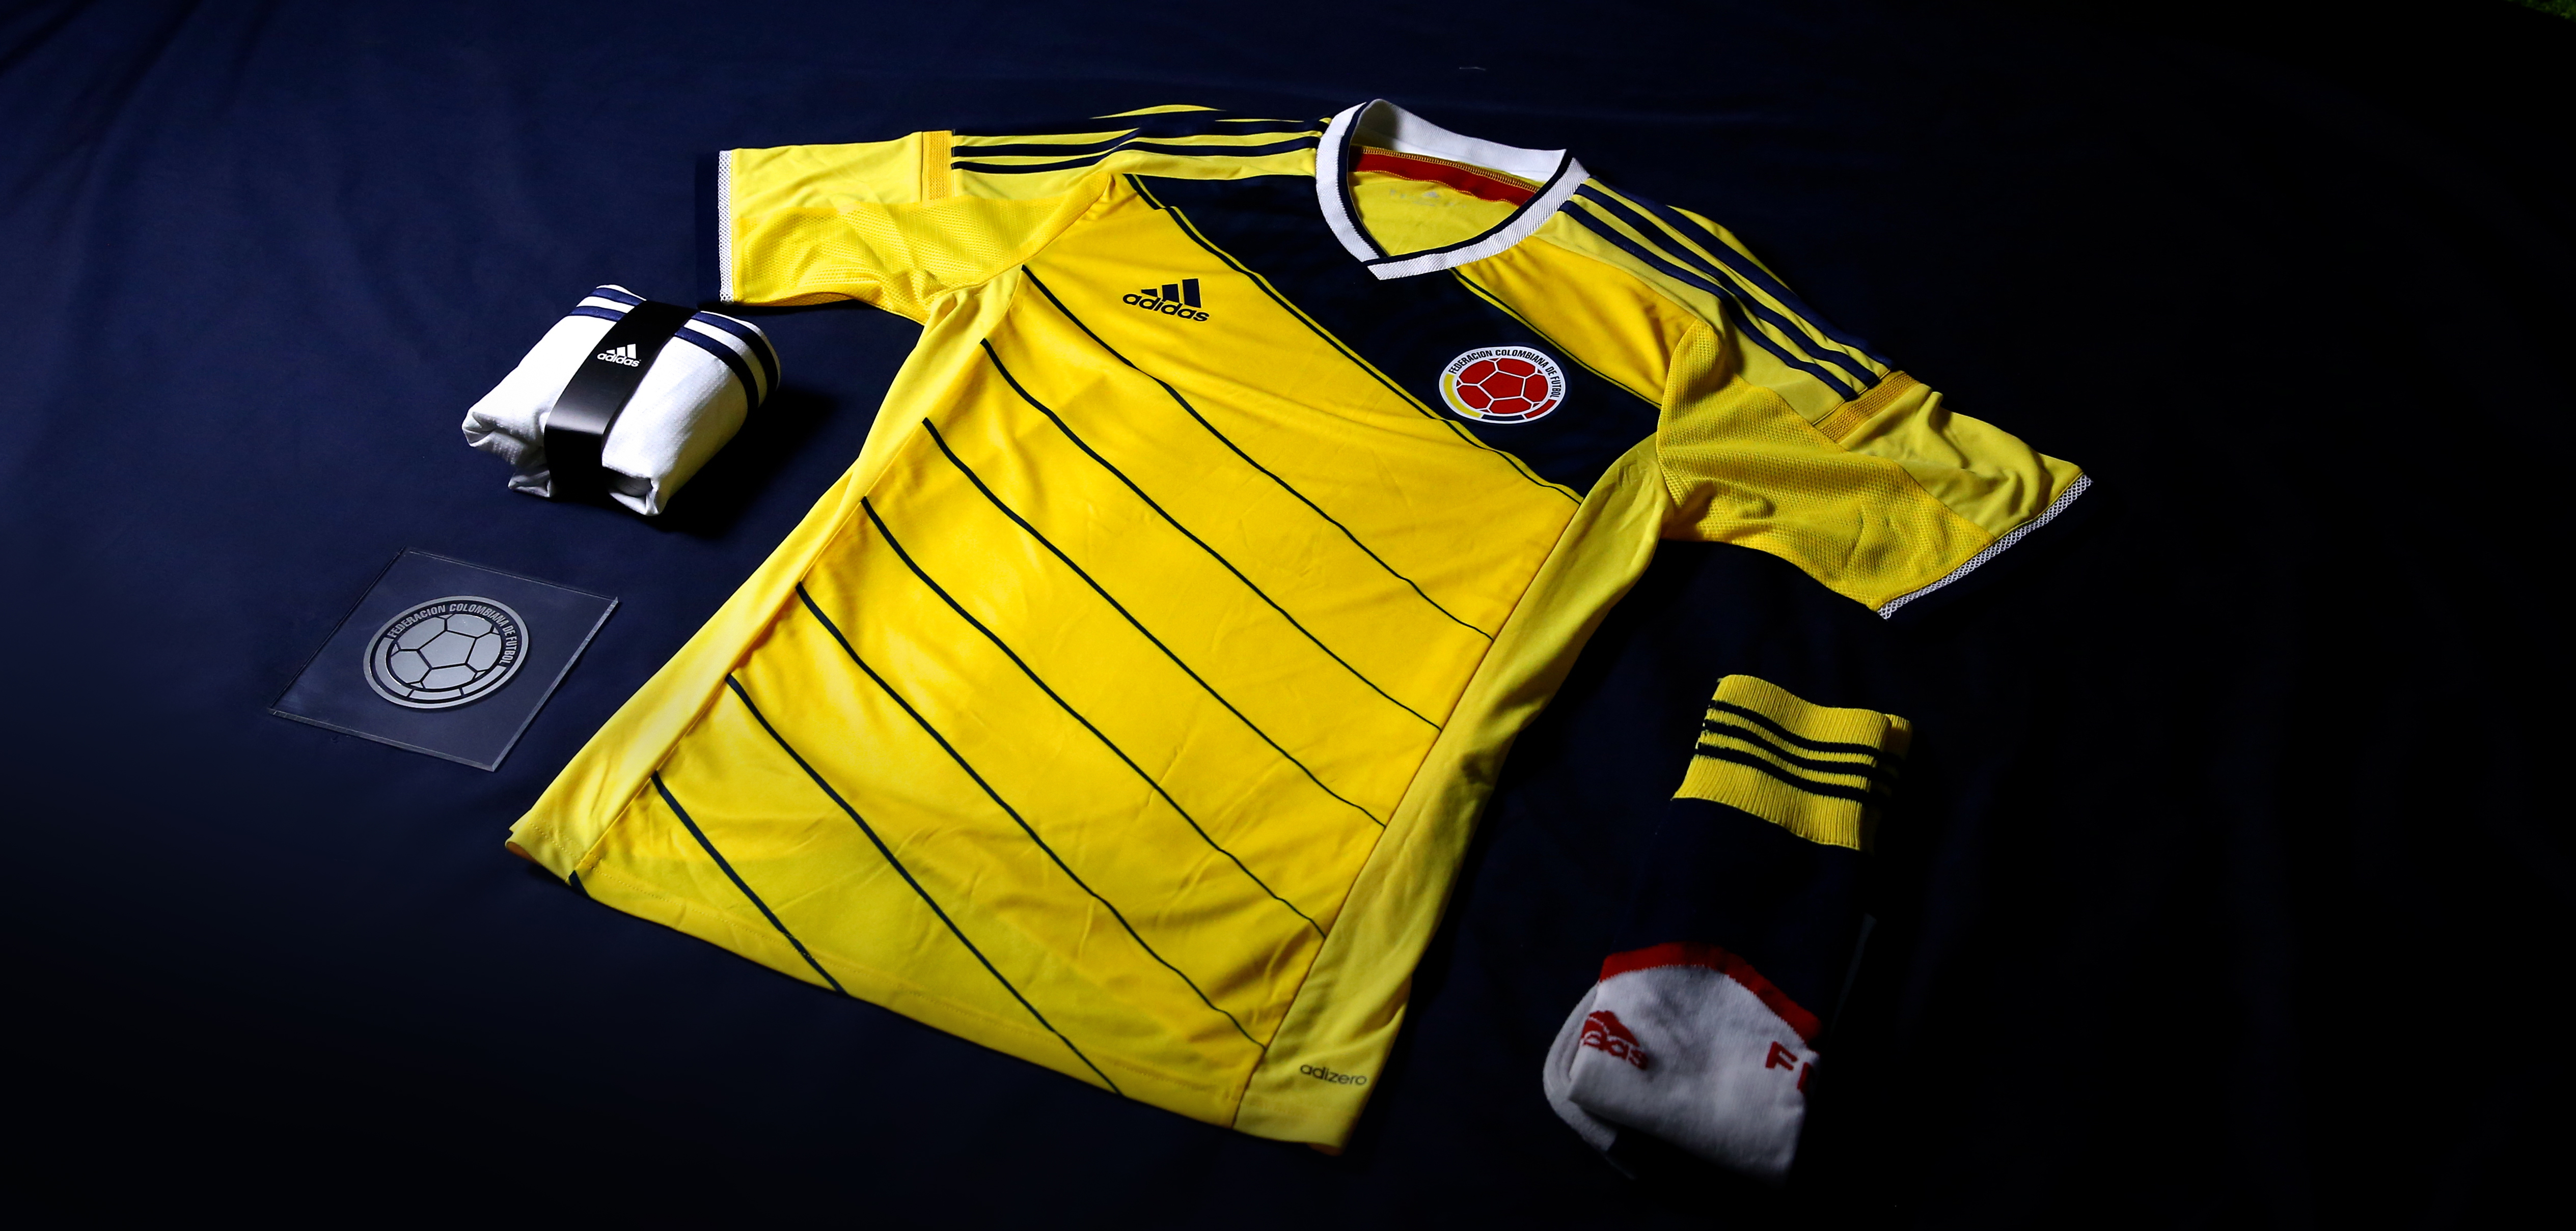 ecf527eed The Colombian national team have a sparkling new adidas kit ready for the  upcoming 2014 FIFA World Cup Brazil and Sport-locker.net can show and tell  you all ...